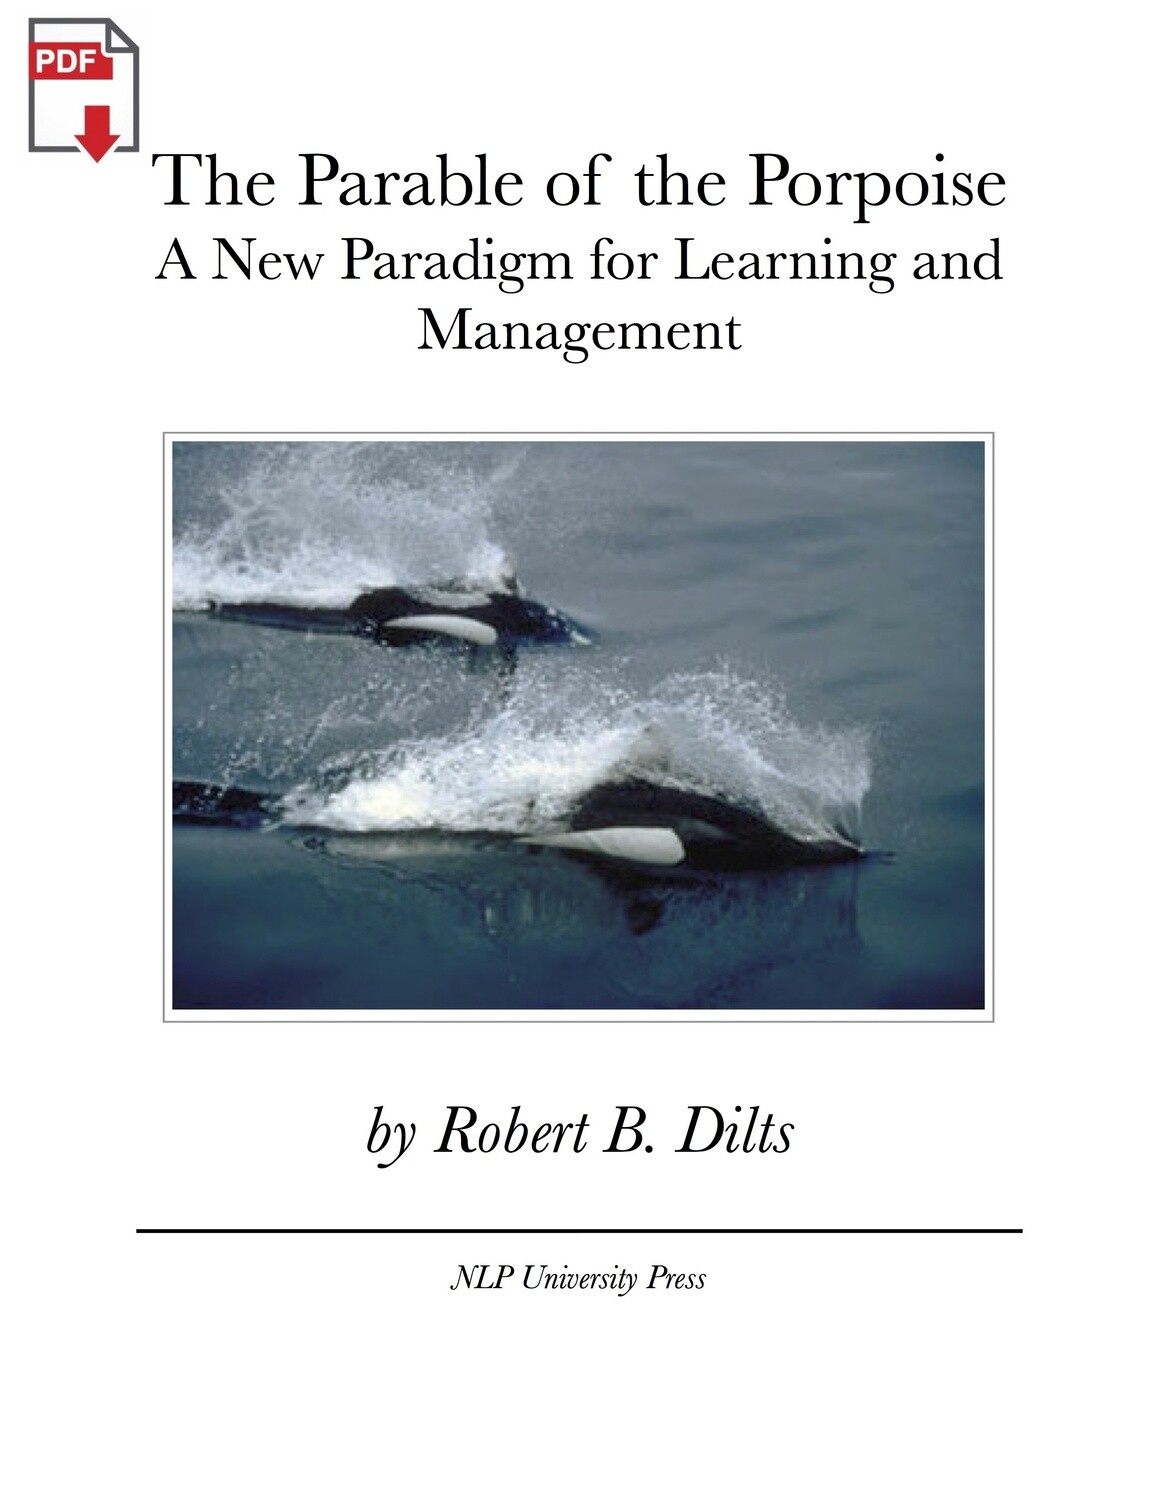 The Parable of the Porpoise [PDF]